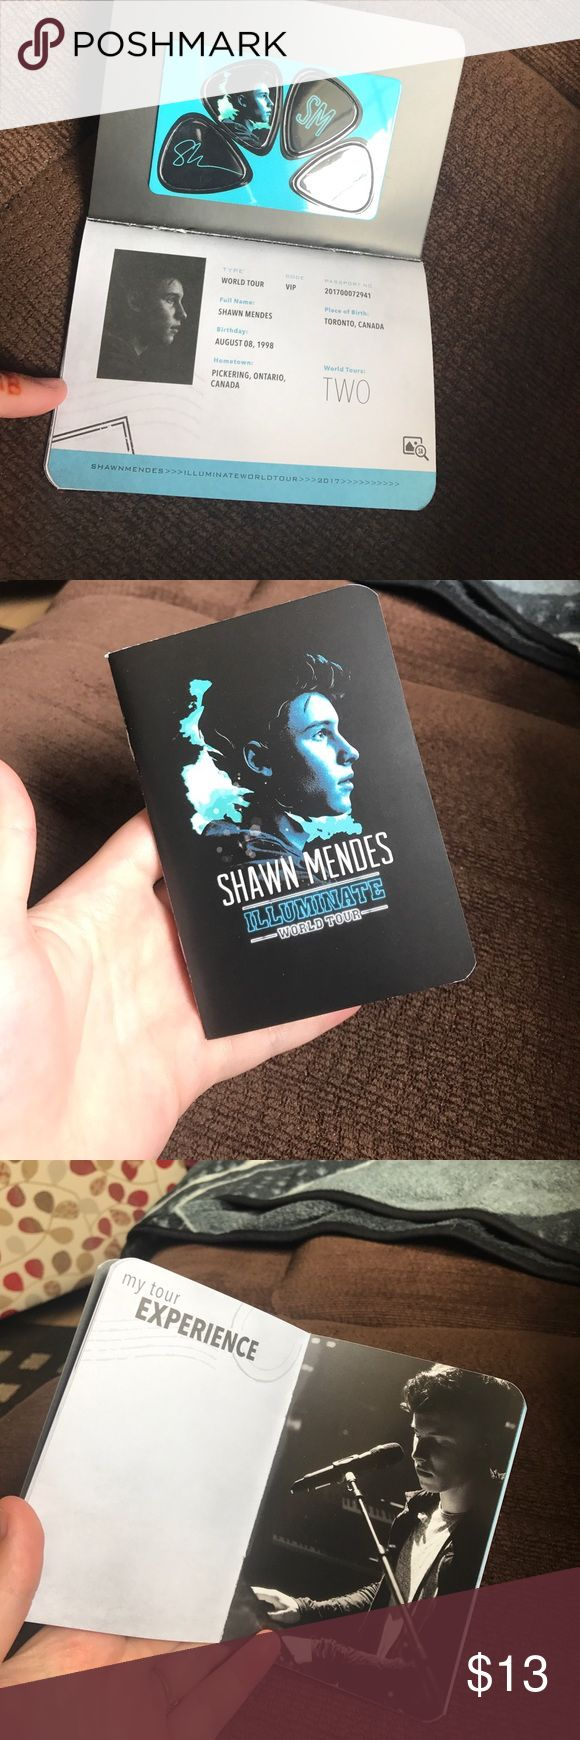 EXCLUSIVE VIP SHAWN MENDES TOUR PASSPORT VIP brand new booklet. Comes with exclusive photos and notes from Shawn and four guitar picks. Brand new and super cool. Shawn Mendes Other